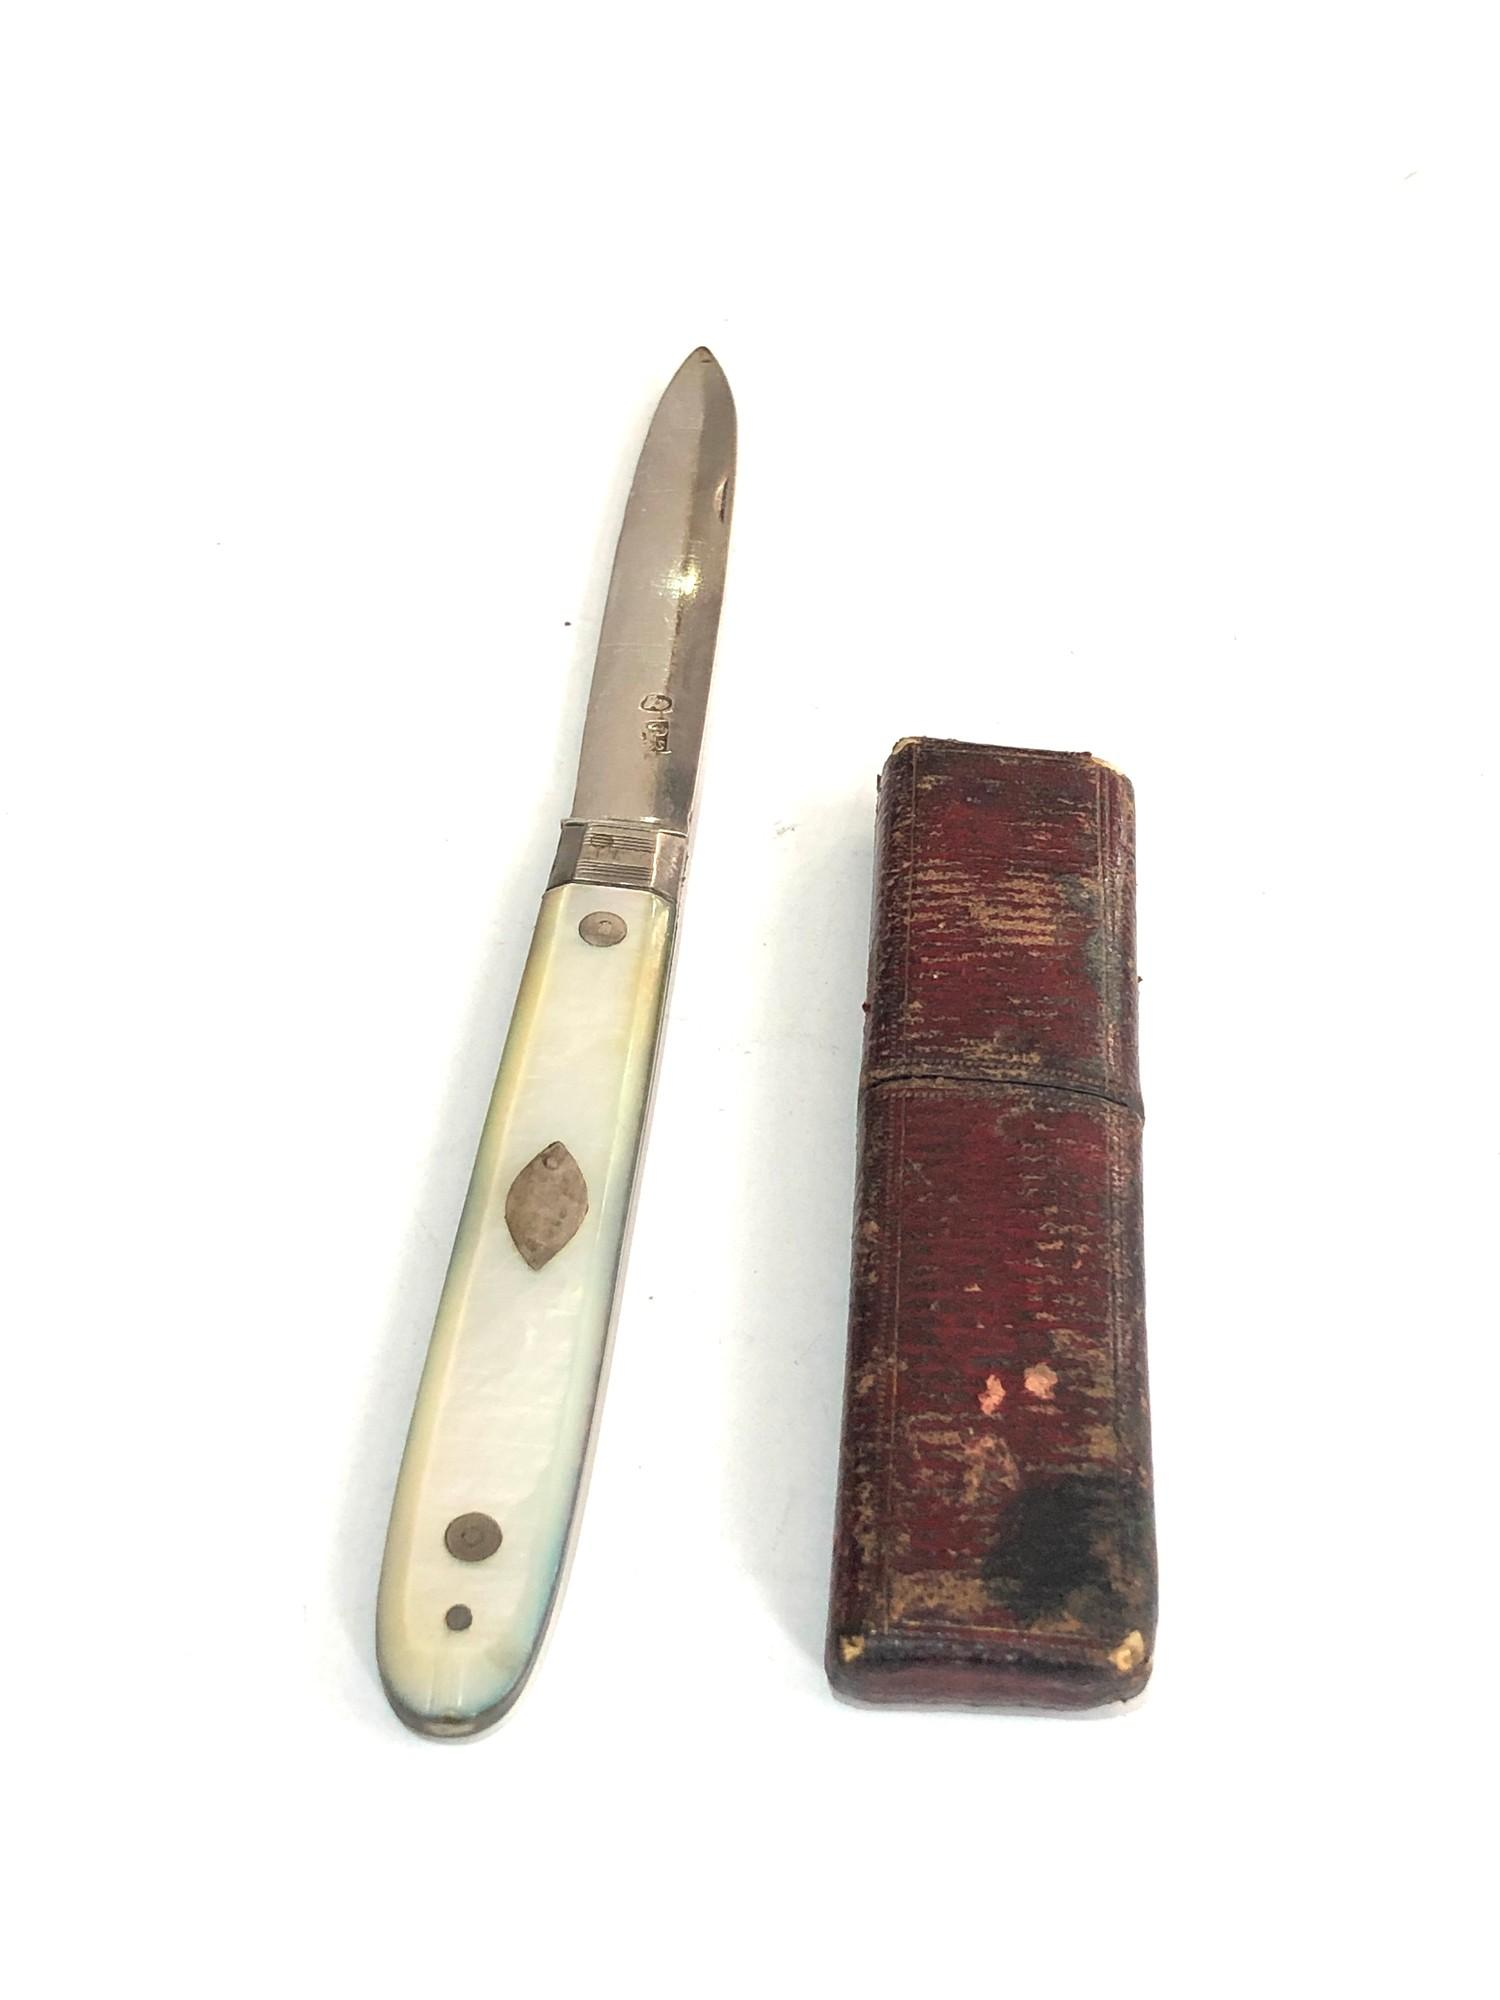 Antique boxed Georgian silver fruit knife m.o.p handle in good condition in original box as shown - Image 3 of 4